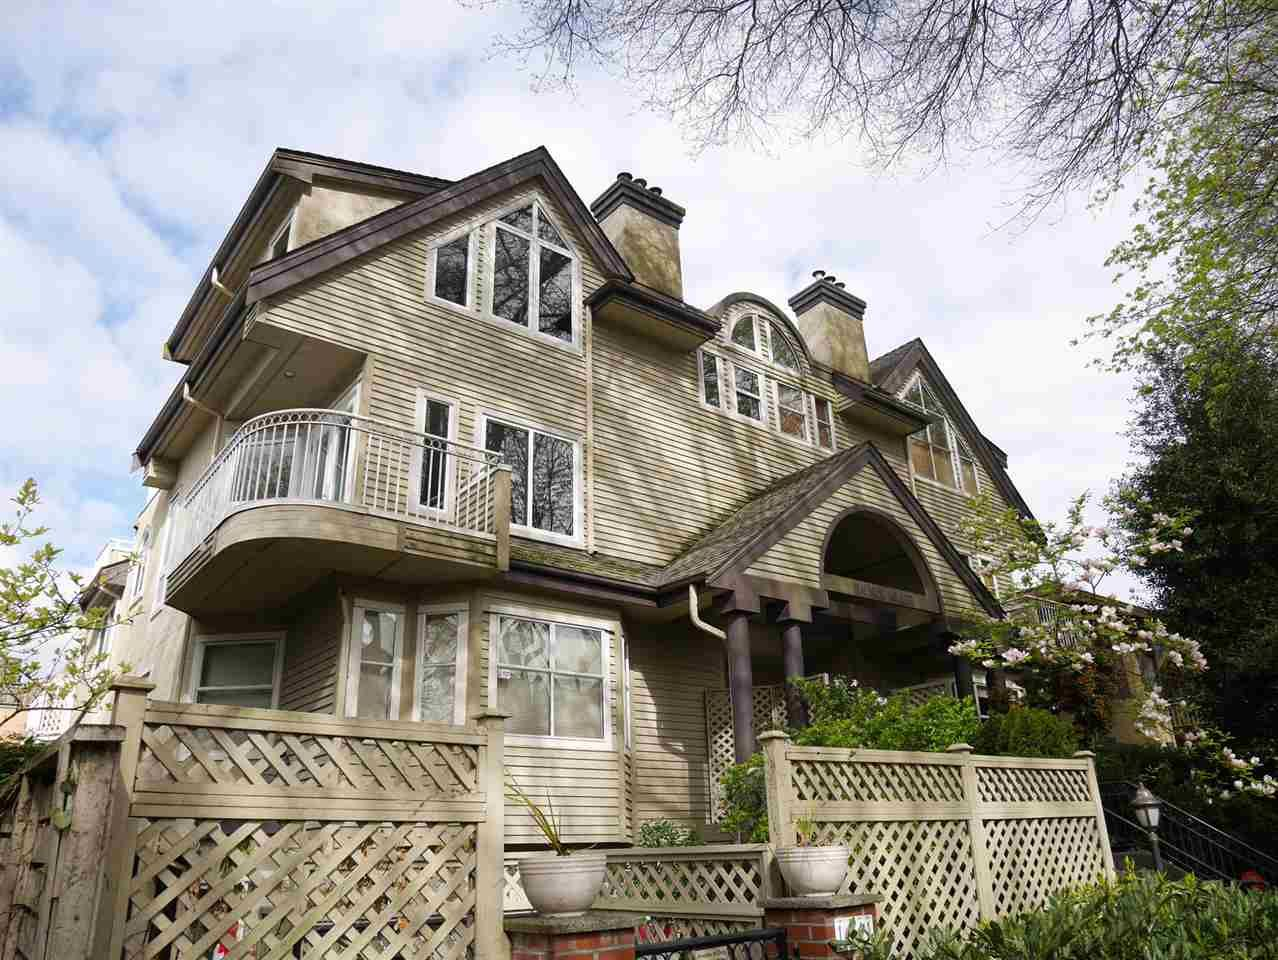 Main Photo: 1465 WALNUT Street in Vancouver: Kitsilano Townhouse for sale (Vancouver West)  : MLS®# R2170959